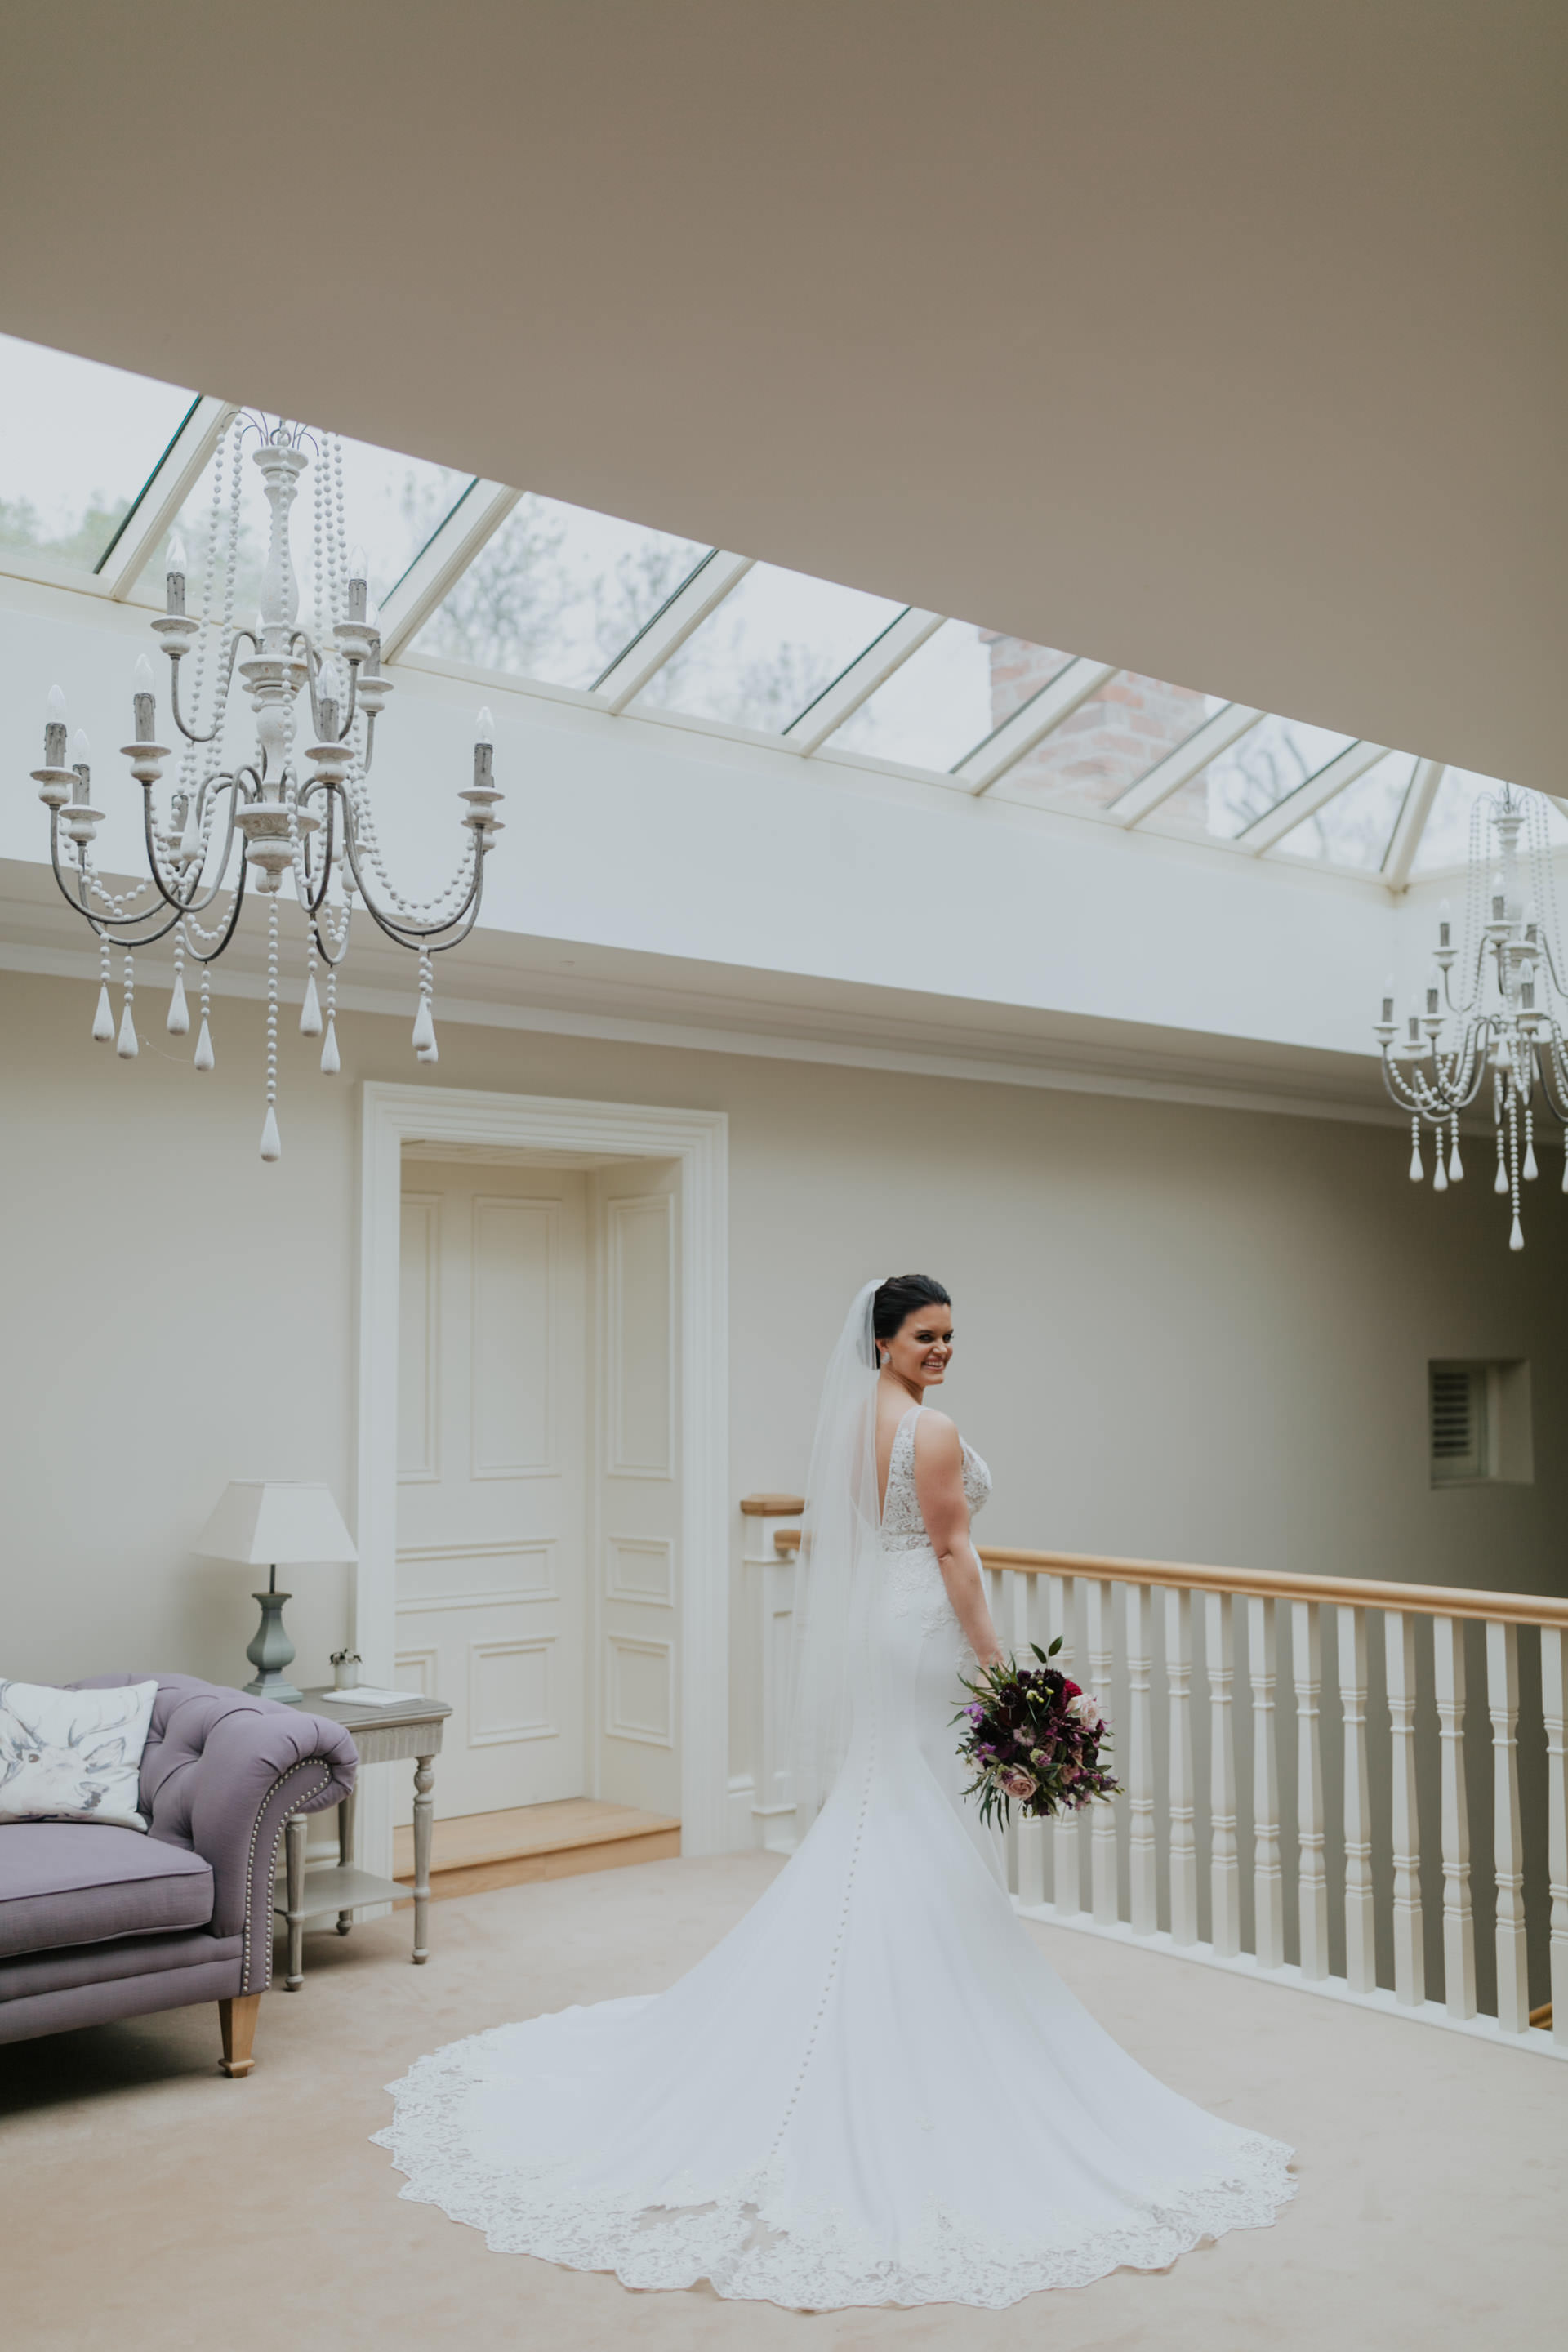 c+j_louth_wedding_photographer_bellingham_castle_livia_figueiredo_4.jpg